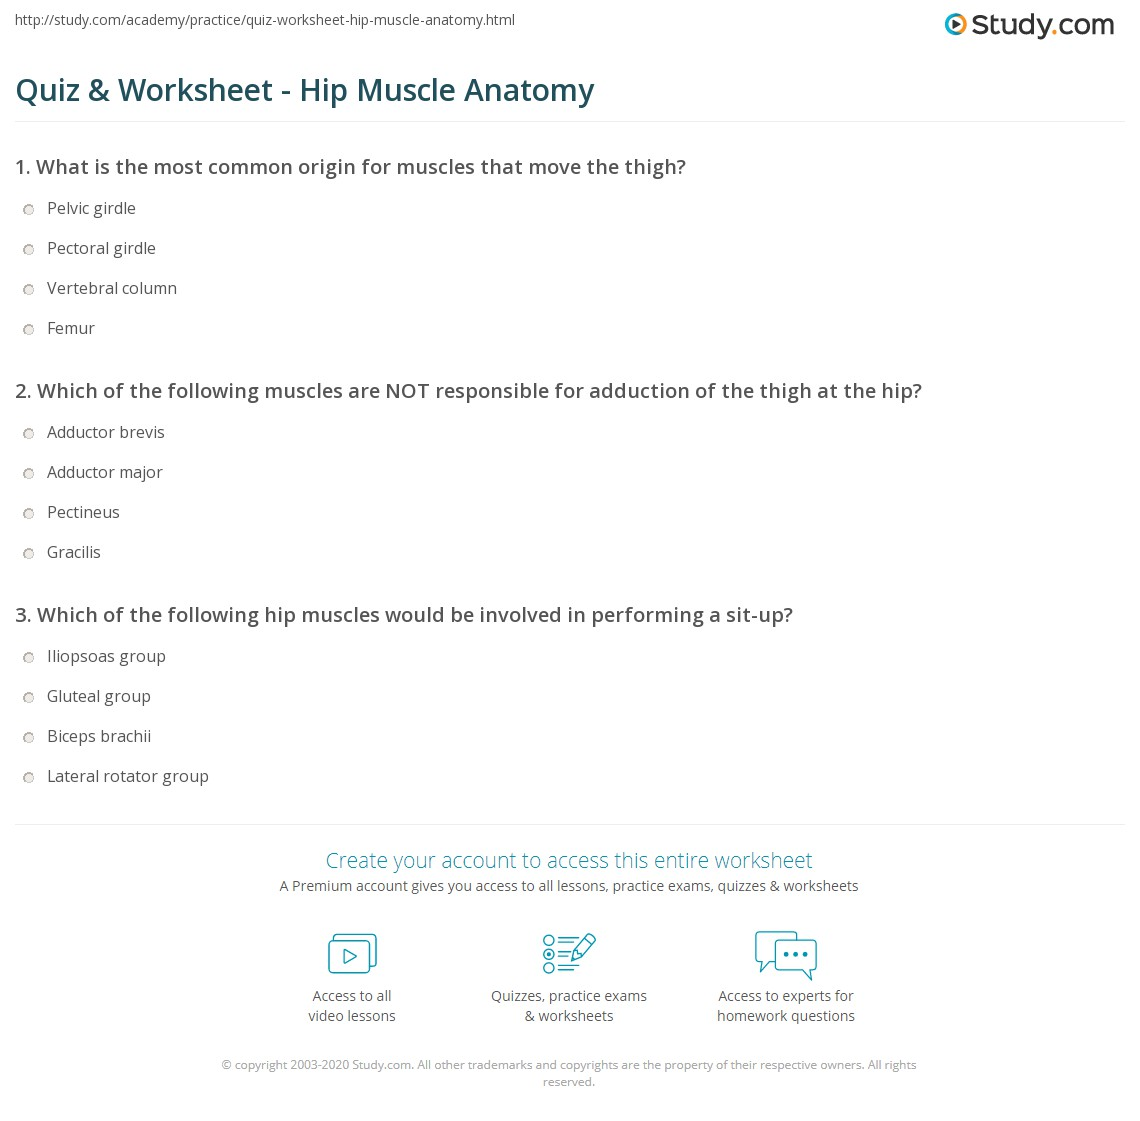 Quiz & Worksheet - Hip Muscle Anatomy | Study.com